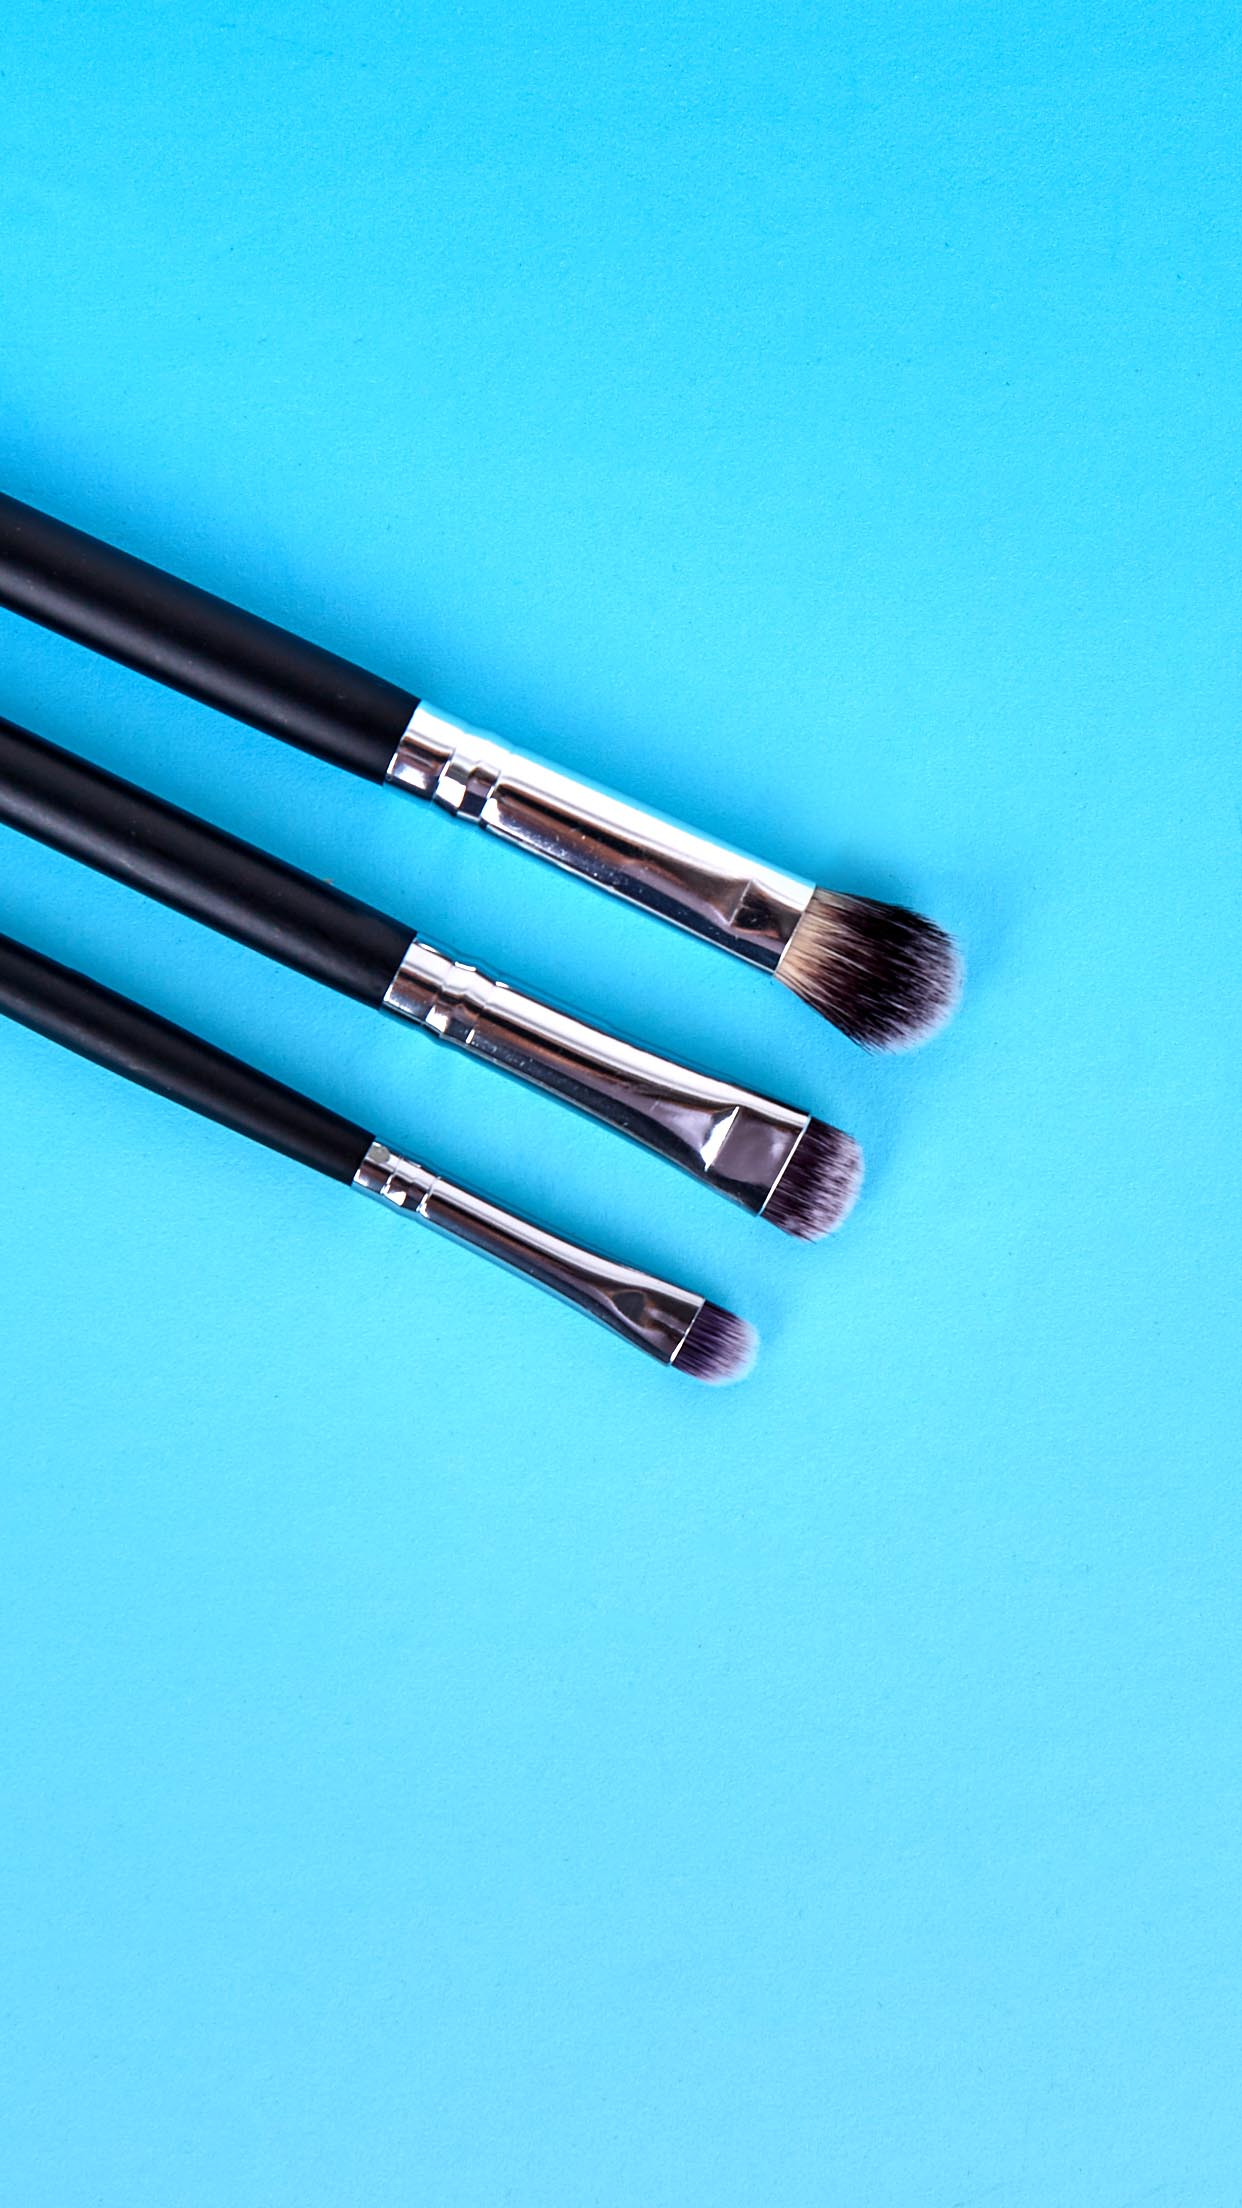 Crown Deluxe Eye Brushes